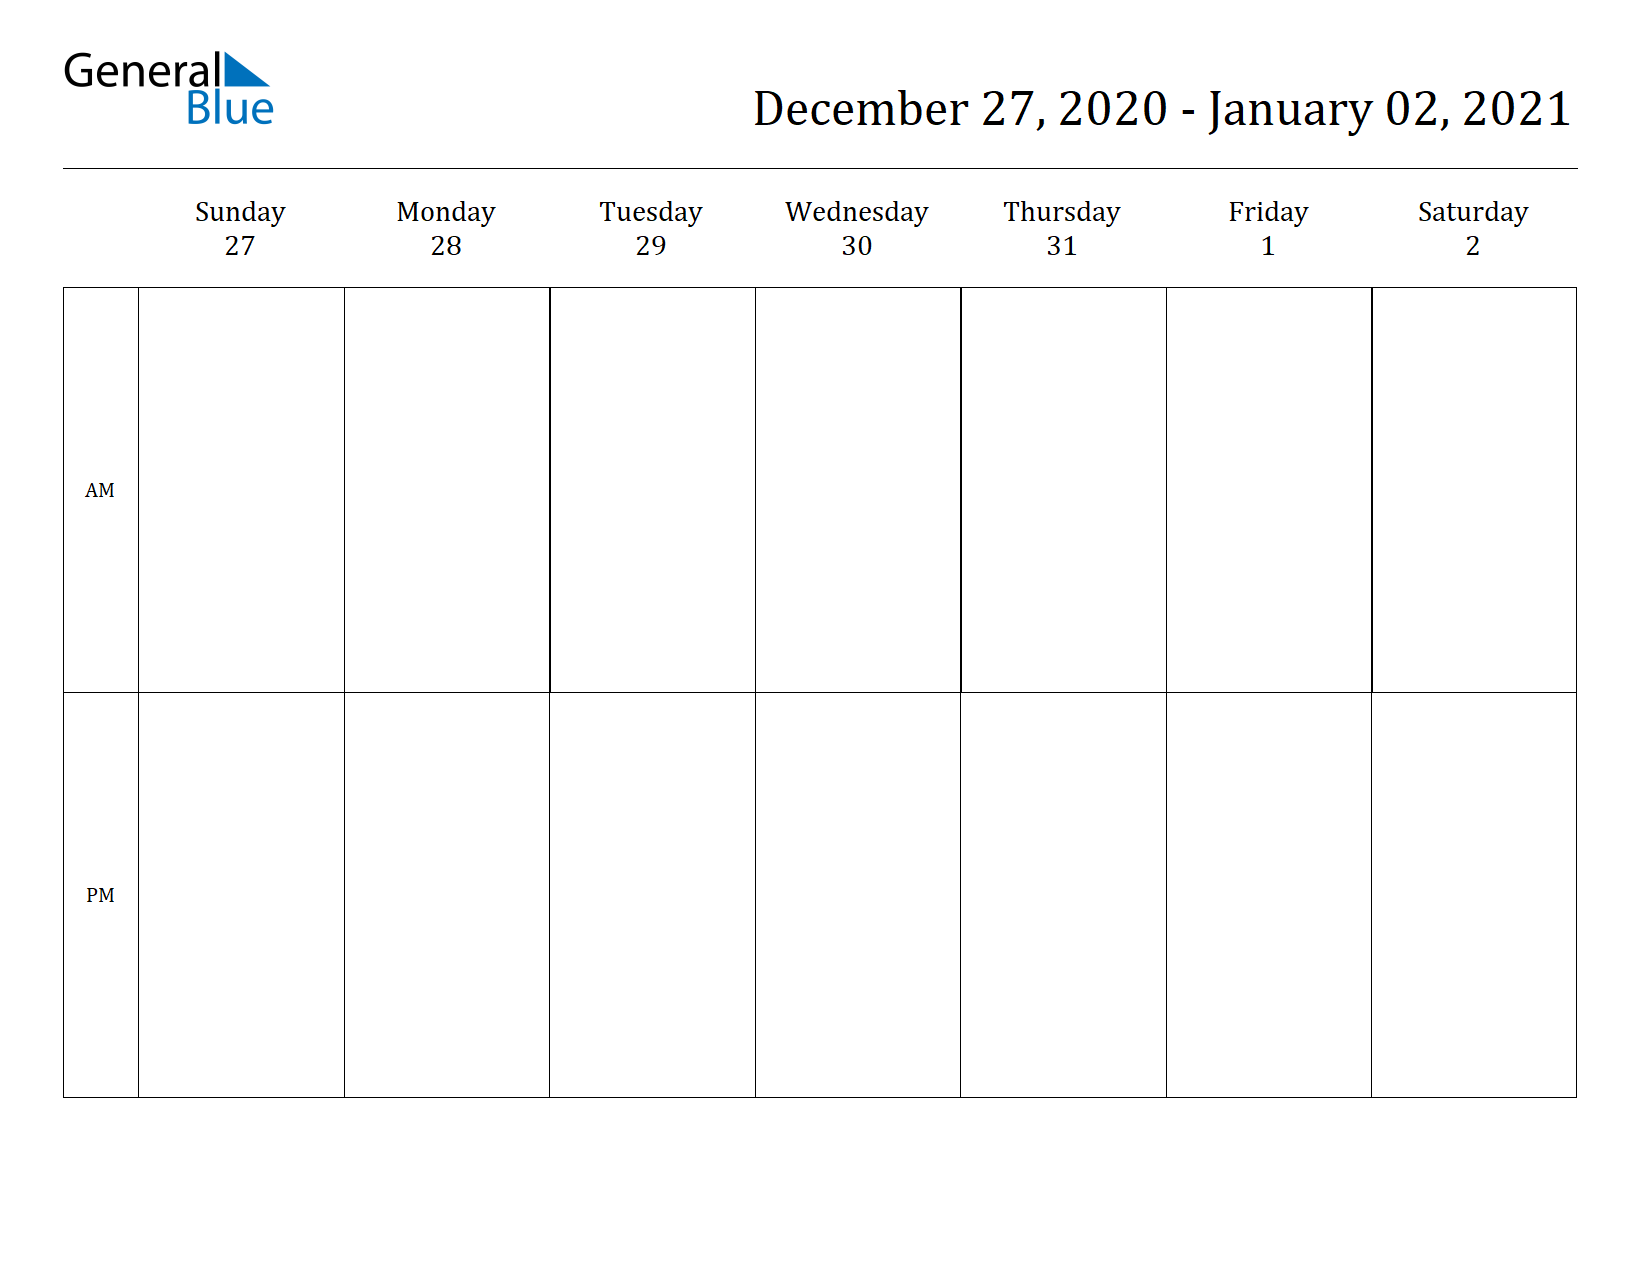 Weekly Calendar for Dec 27, 2020 to Jan 02, 2021